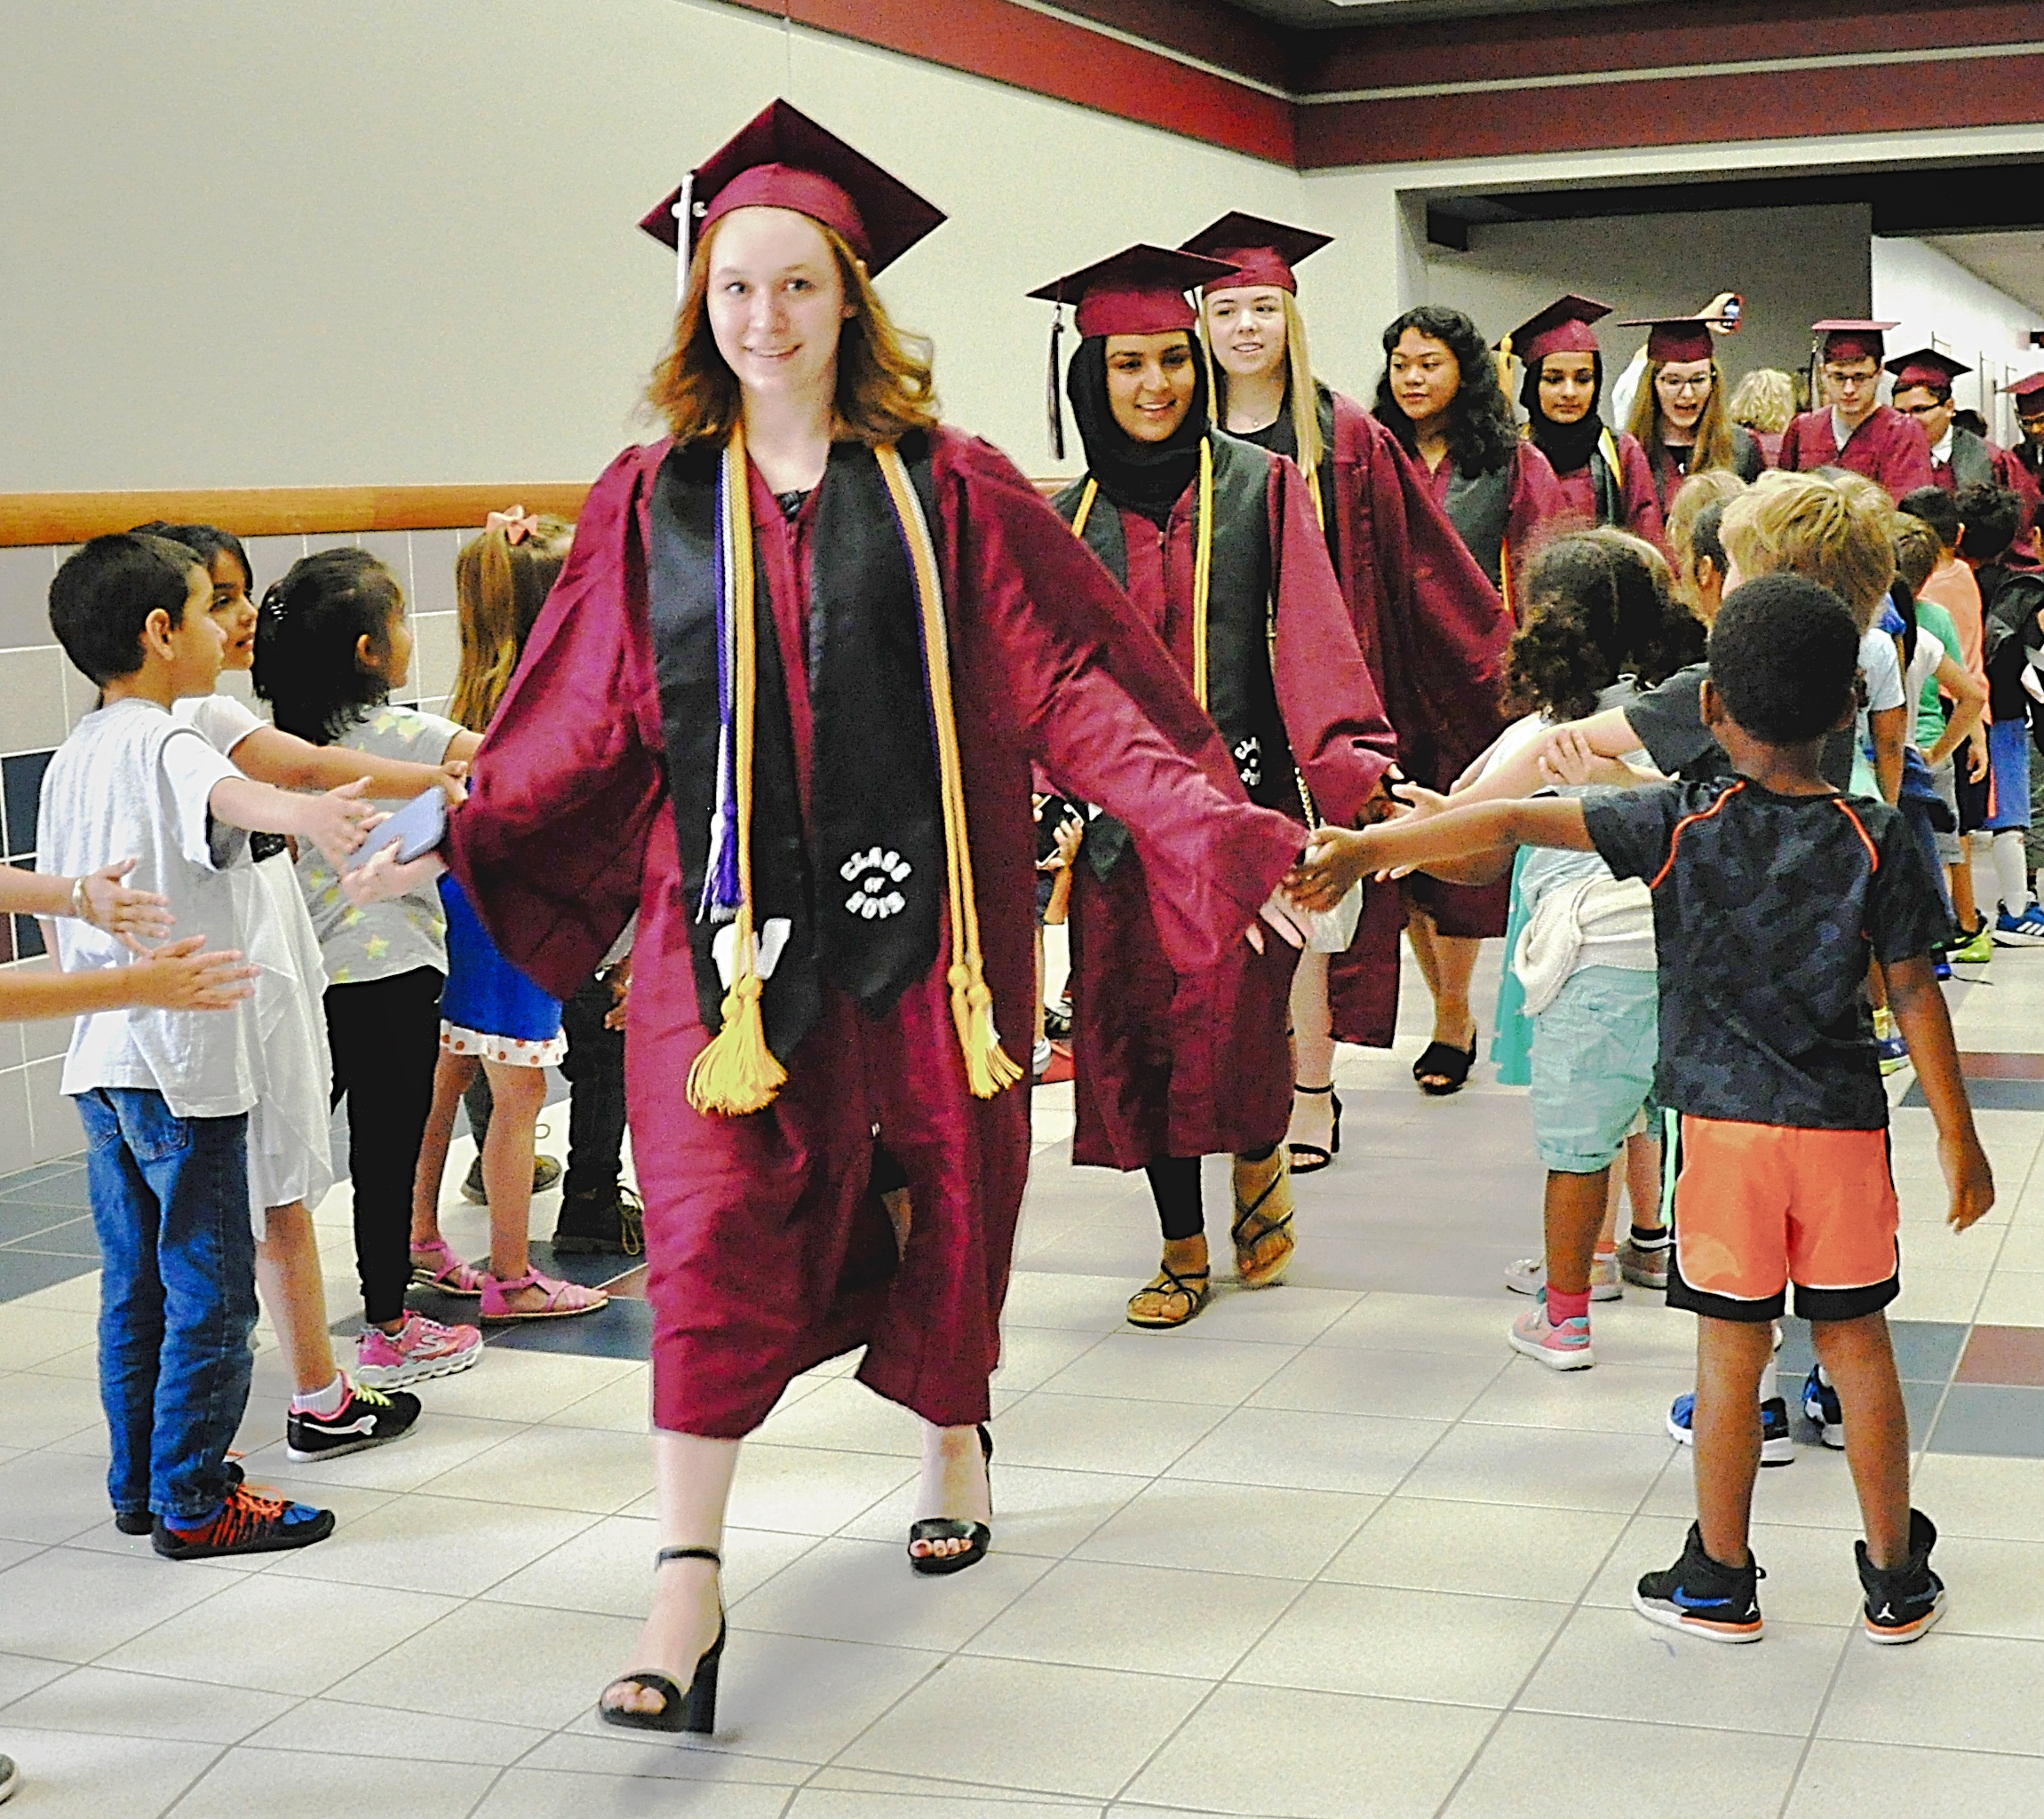 Zoe Goldade walks the halls giving high-fives to students.